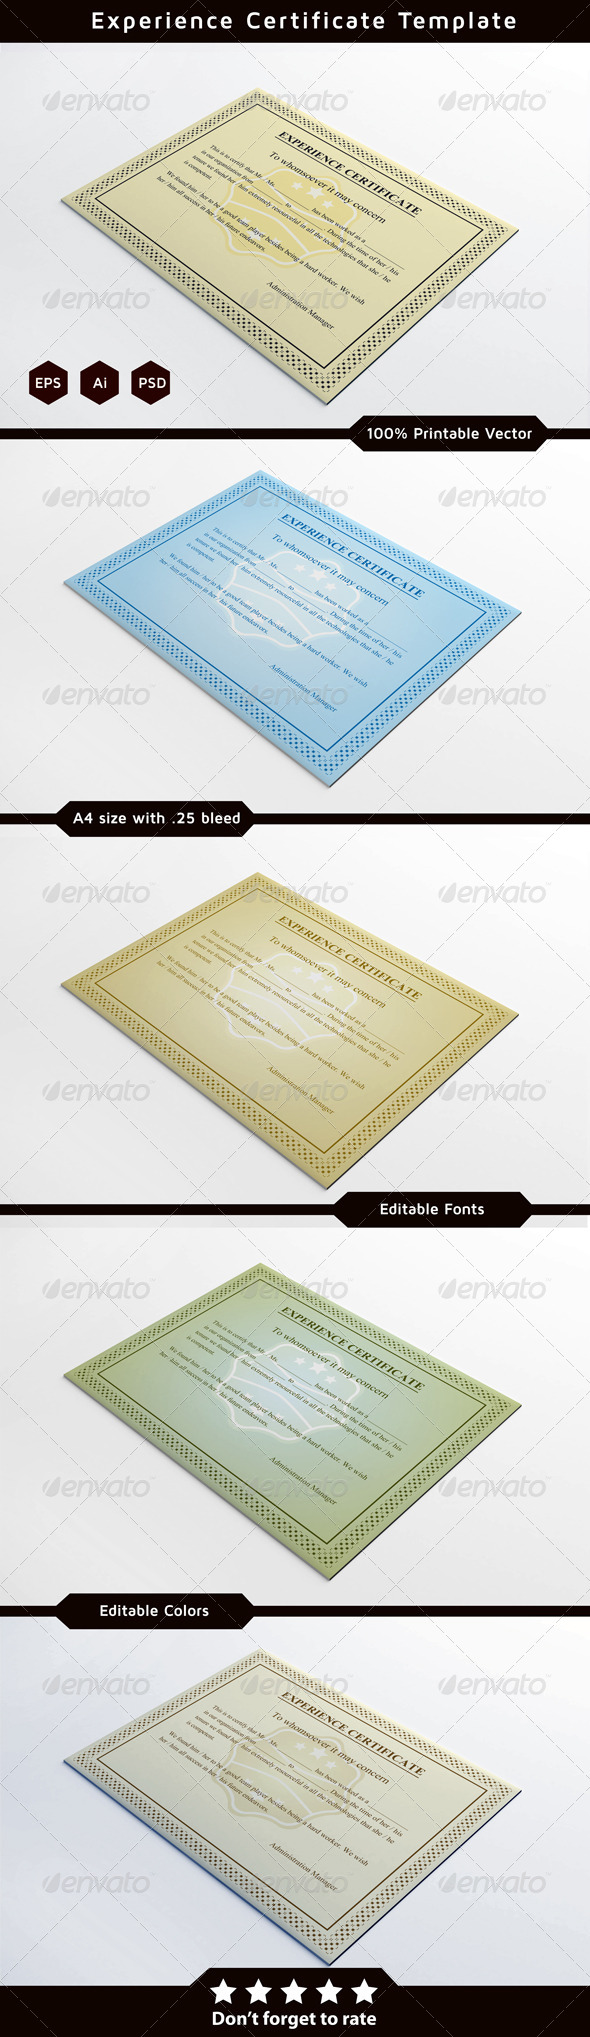 GraphicRiver Experience Certificates 6346742